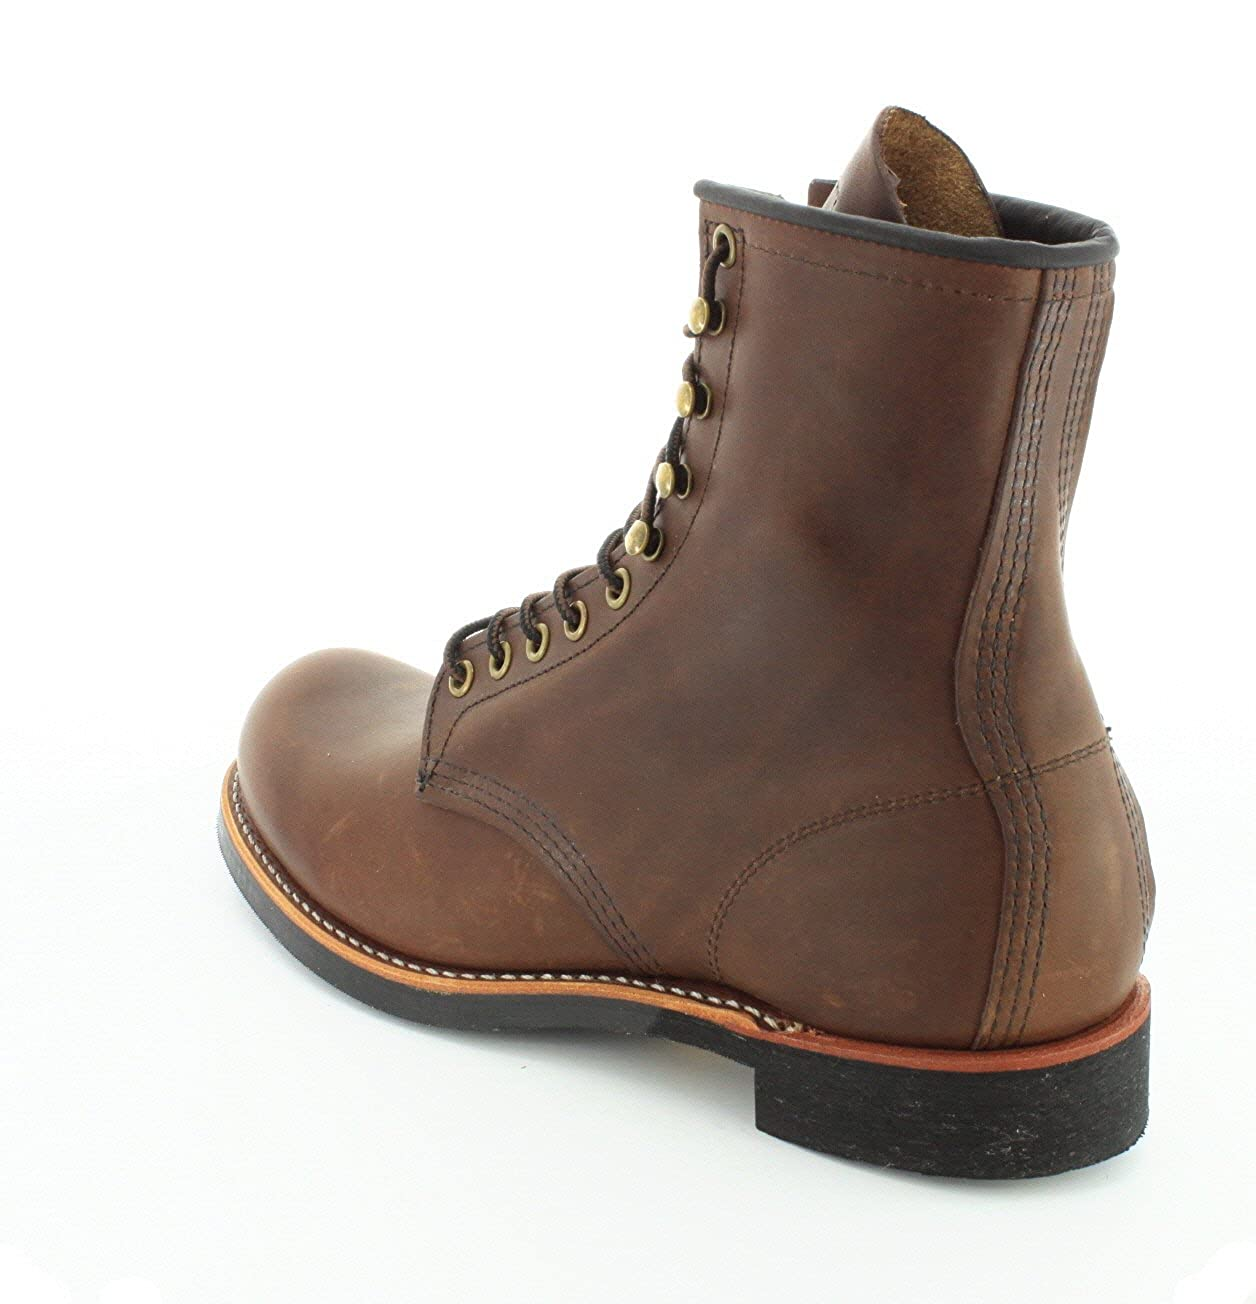 Red Wing Boots - - Red Wing Harvester Boots - - Amb... Amber Harness 17bb78